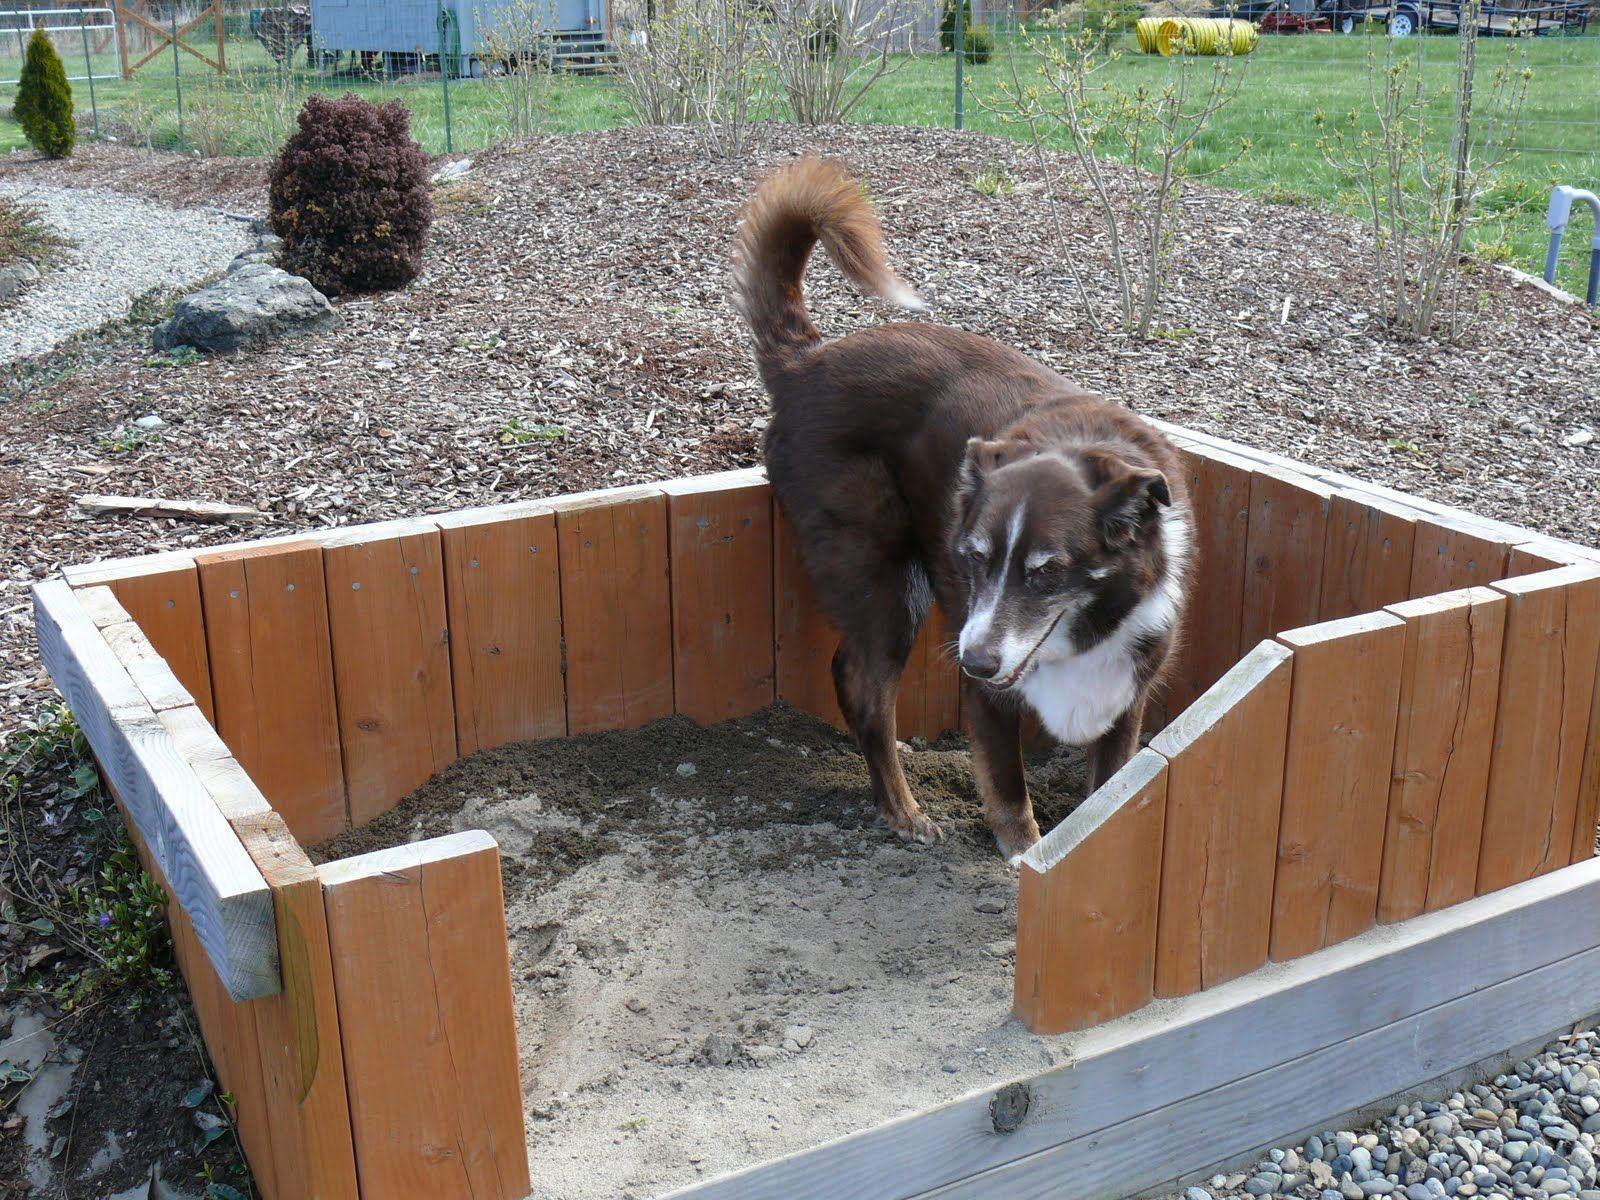 Create A Digging Pit For Dogs Created Out Of Leftover Decking Lumber Filled With Mix Sand And Dirt To Keep It Lose Well Drained